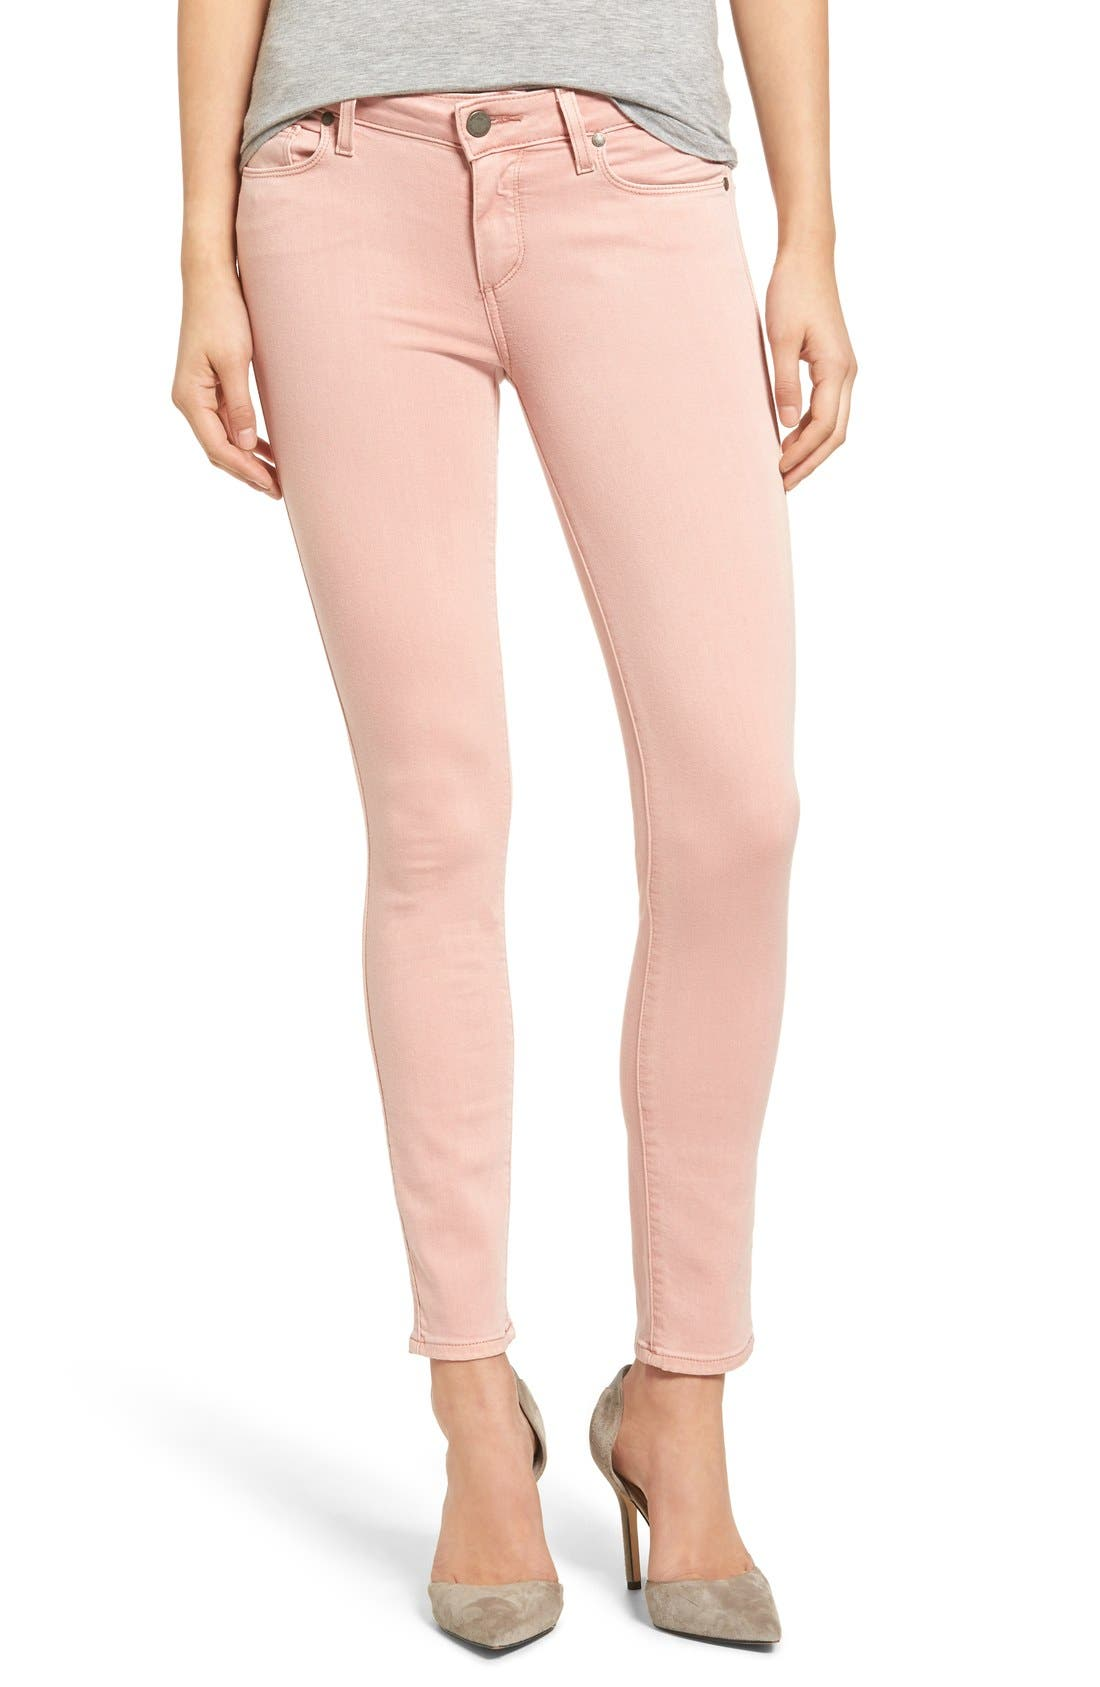 PAIGE Transcend - Verdugo Ankle Skinny Jeans (Faded Petal Pink)